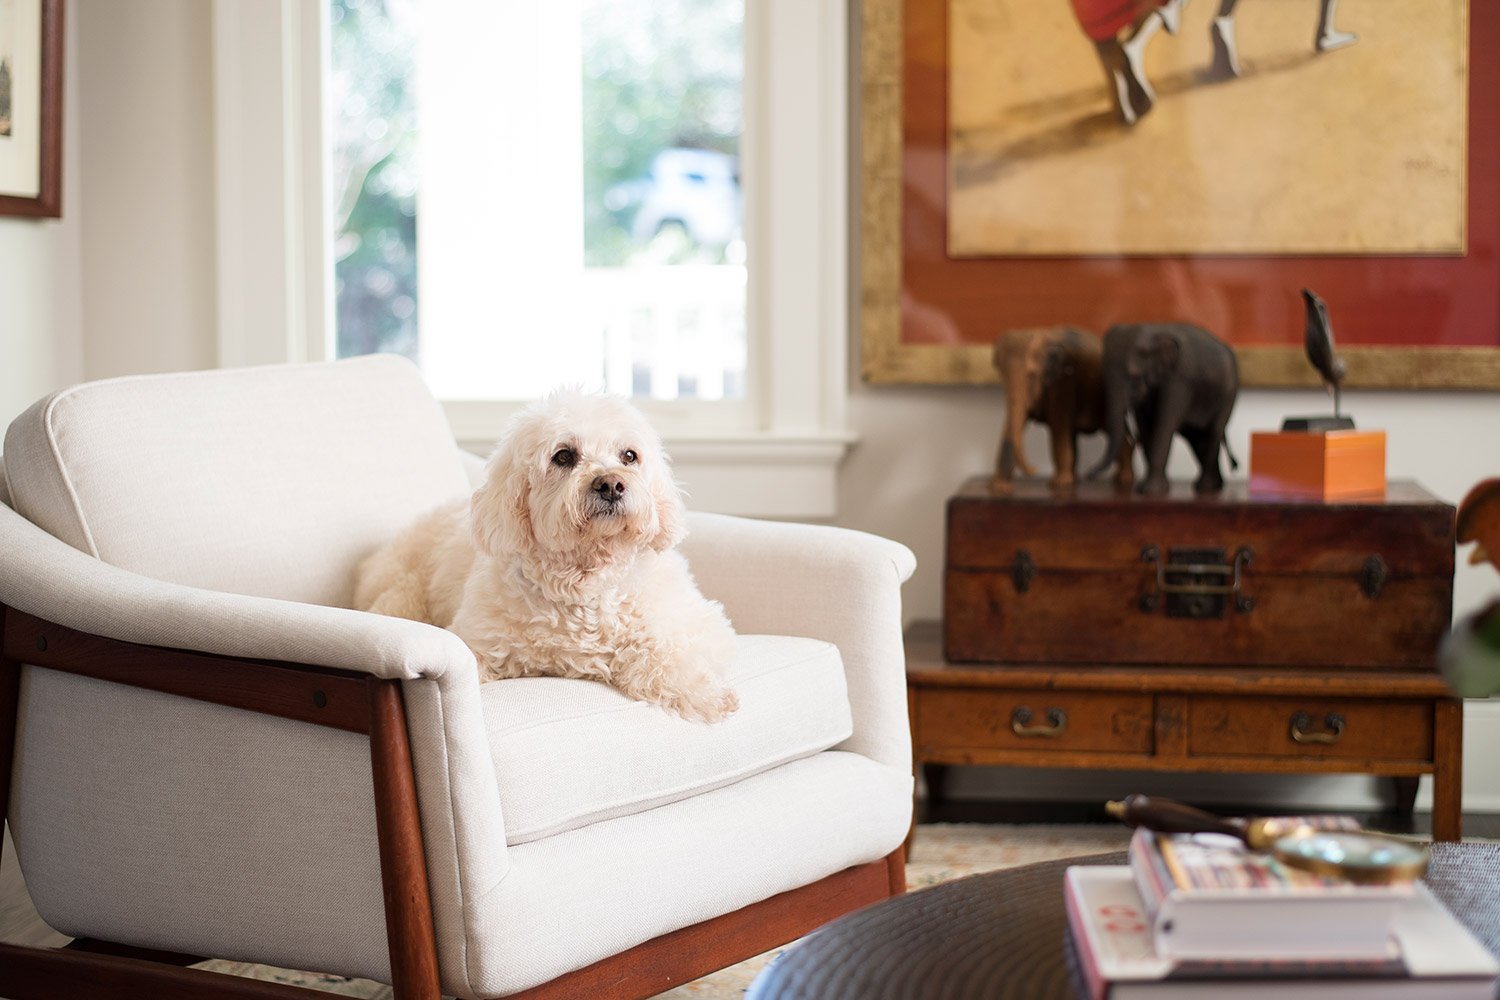 Dog lounging on ivory arm chair in sitting room